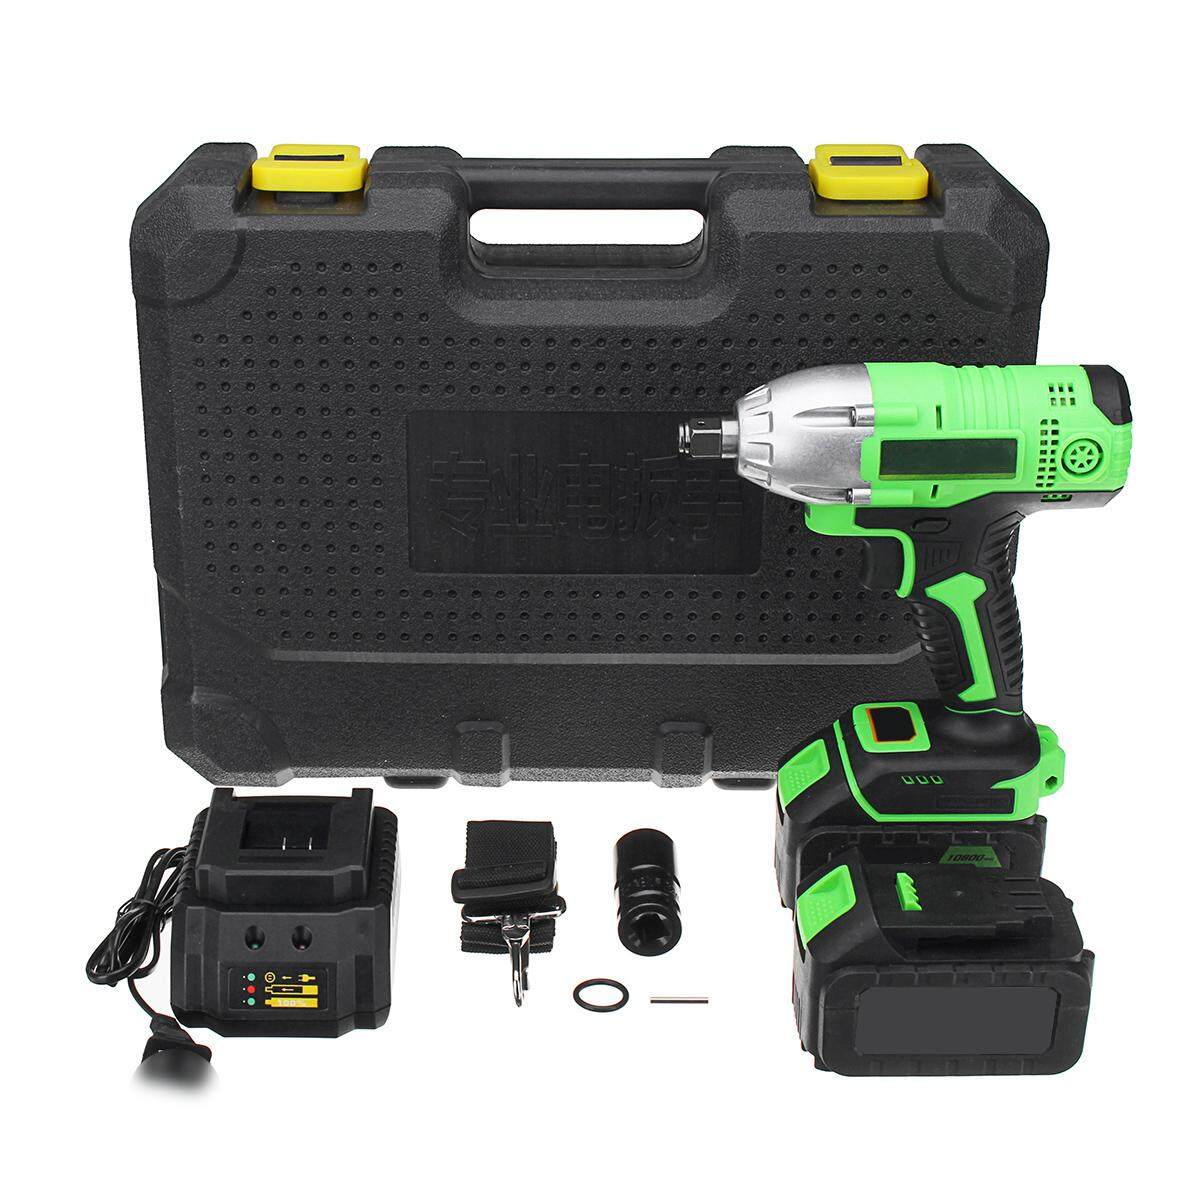 10800mAh 2 Li-Ion Battery Charger Brushless Cordless Impact Wrench W/BOX 108V